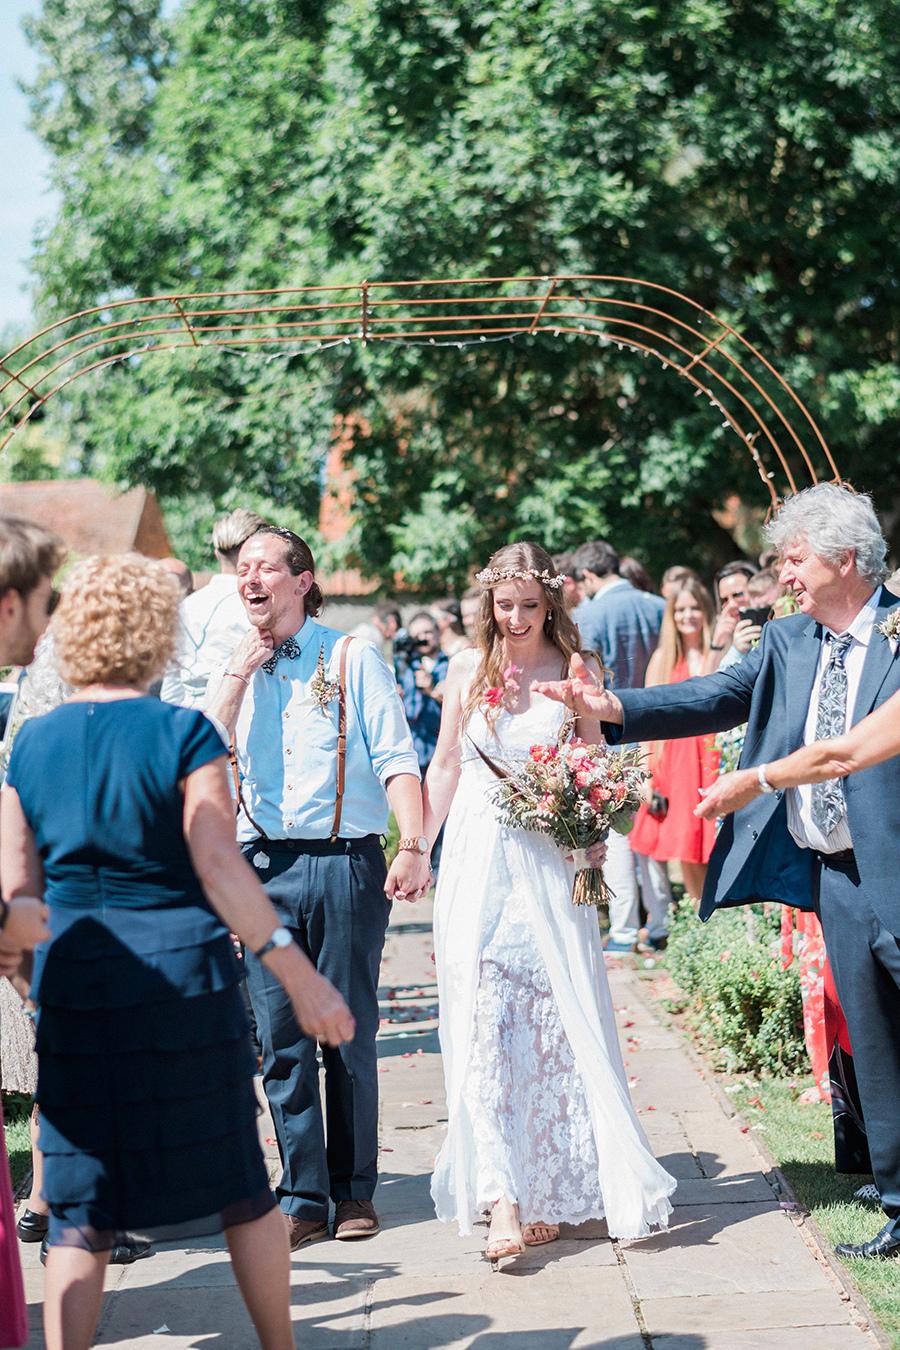 Dreamy boho wedding at Houchins Farm with images by Kathryn Hopkins Photography (12)